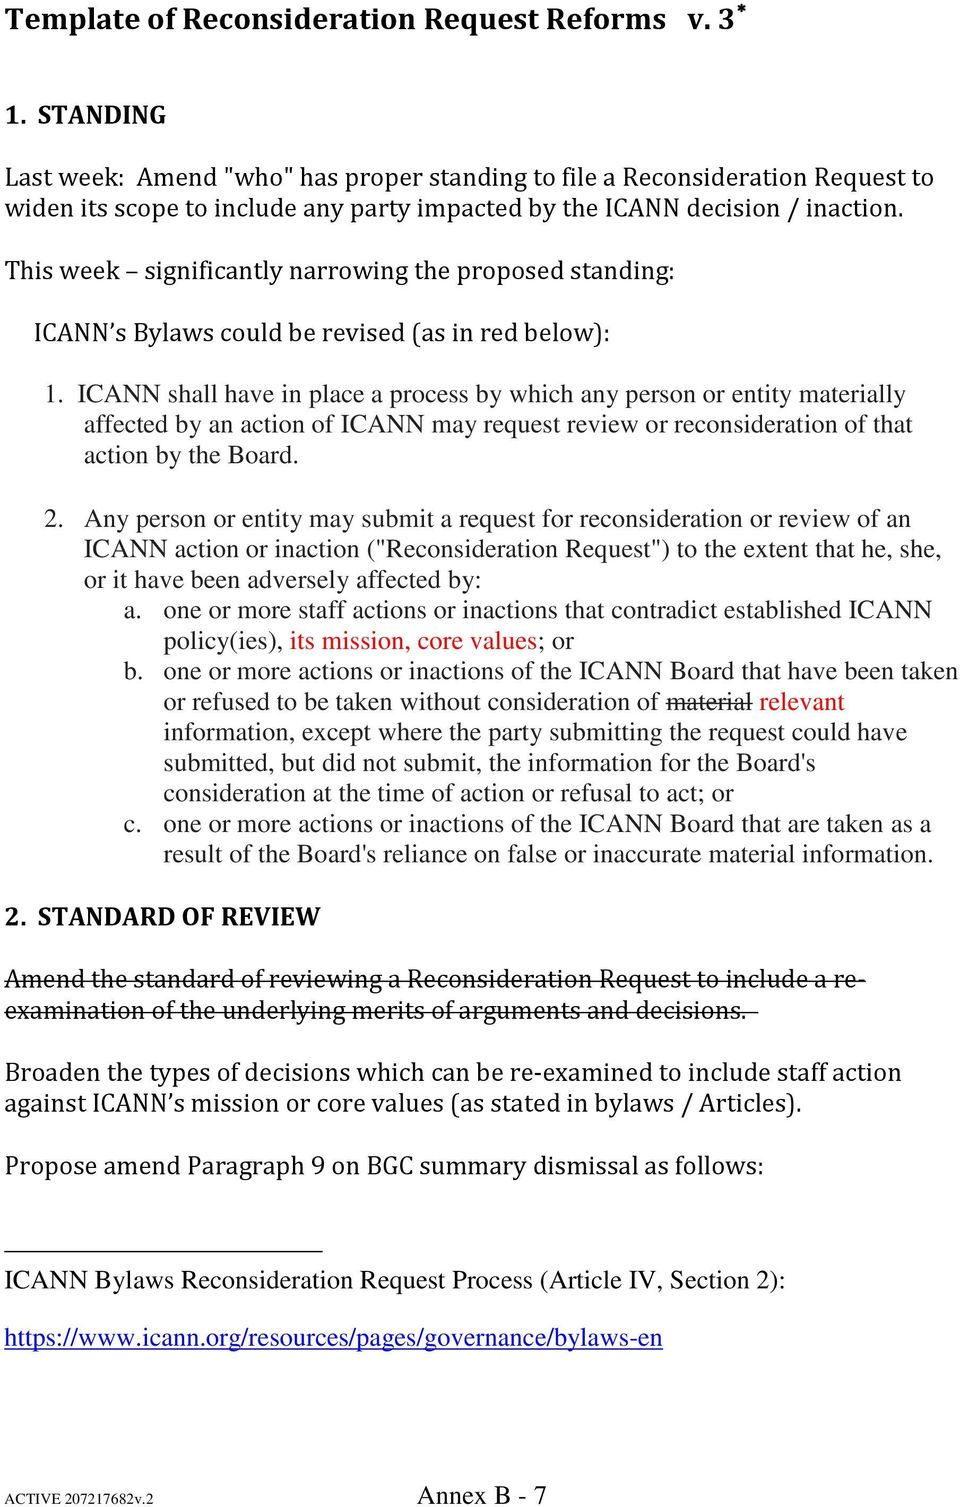 This week significantly narrowing the proposed standing: ICANN s Bylaws could be revised (as in red below): 1.